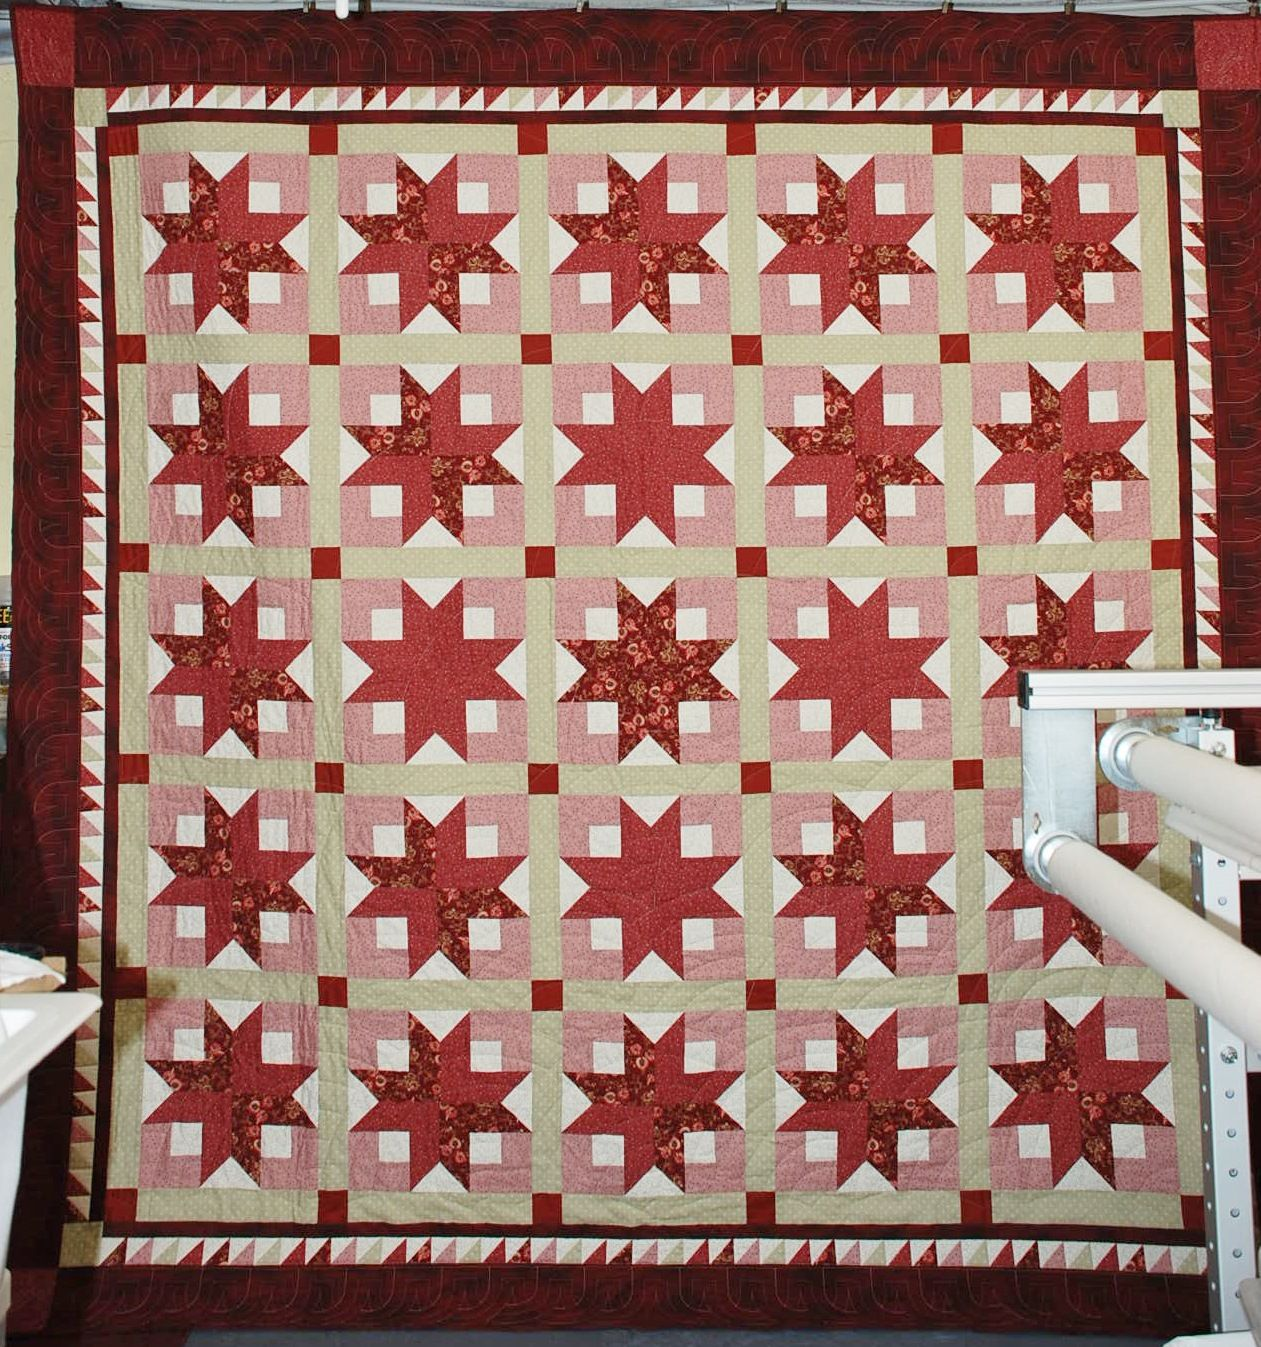 Boxy stars quilt made with 2.5